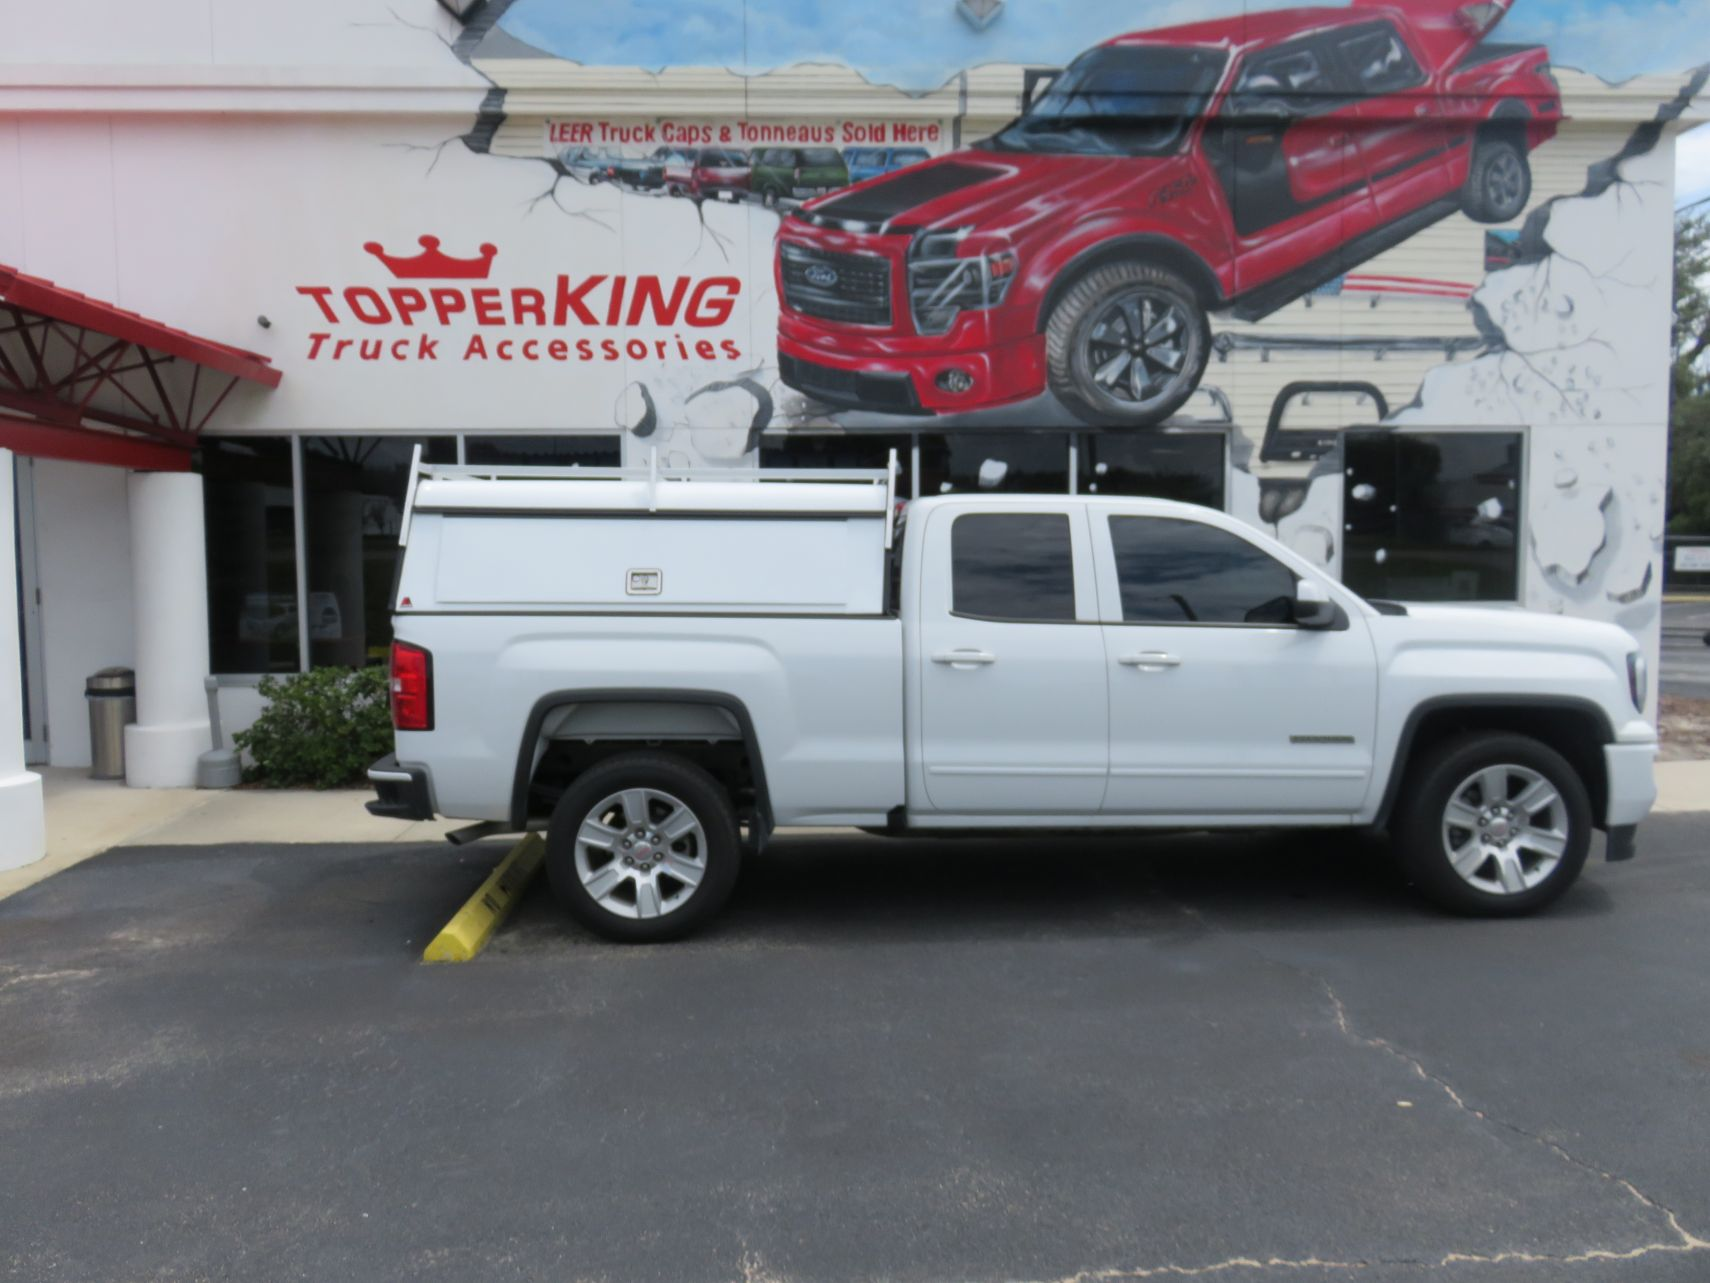 GMC Sierra with LEER DCC Commercial Topper, Side Access Doors, Ladder Rack, Tint, Hitch, Call TopperKING Brandon 813-689-2449 or Clearwater FL 727-530-9066.